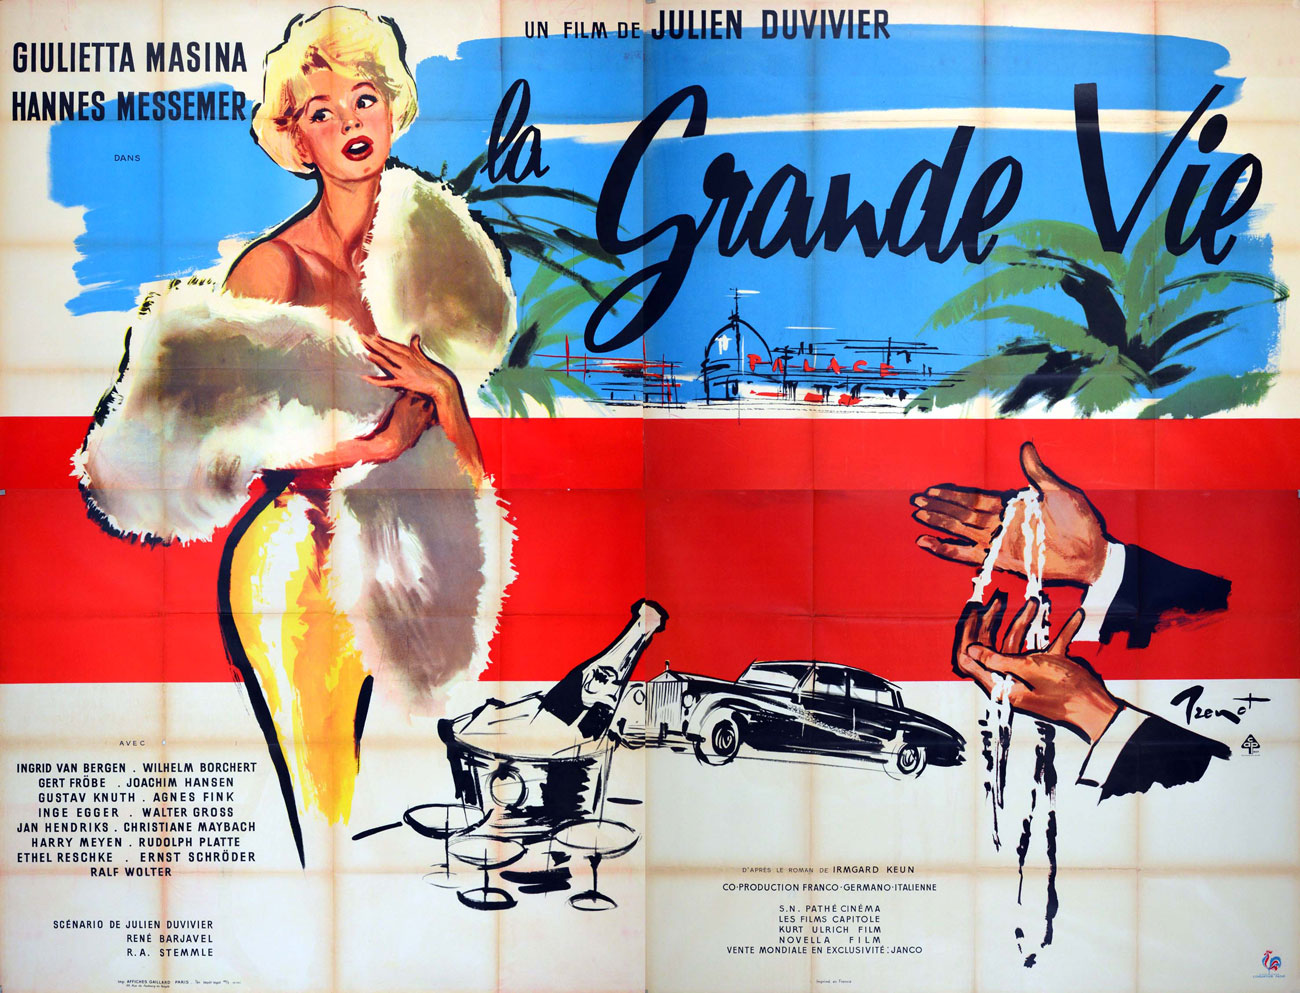 Grande Vie (la) by Julien Duvivier (94 x 126 in)